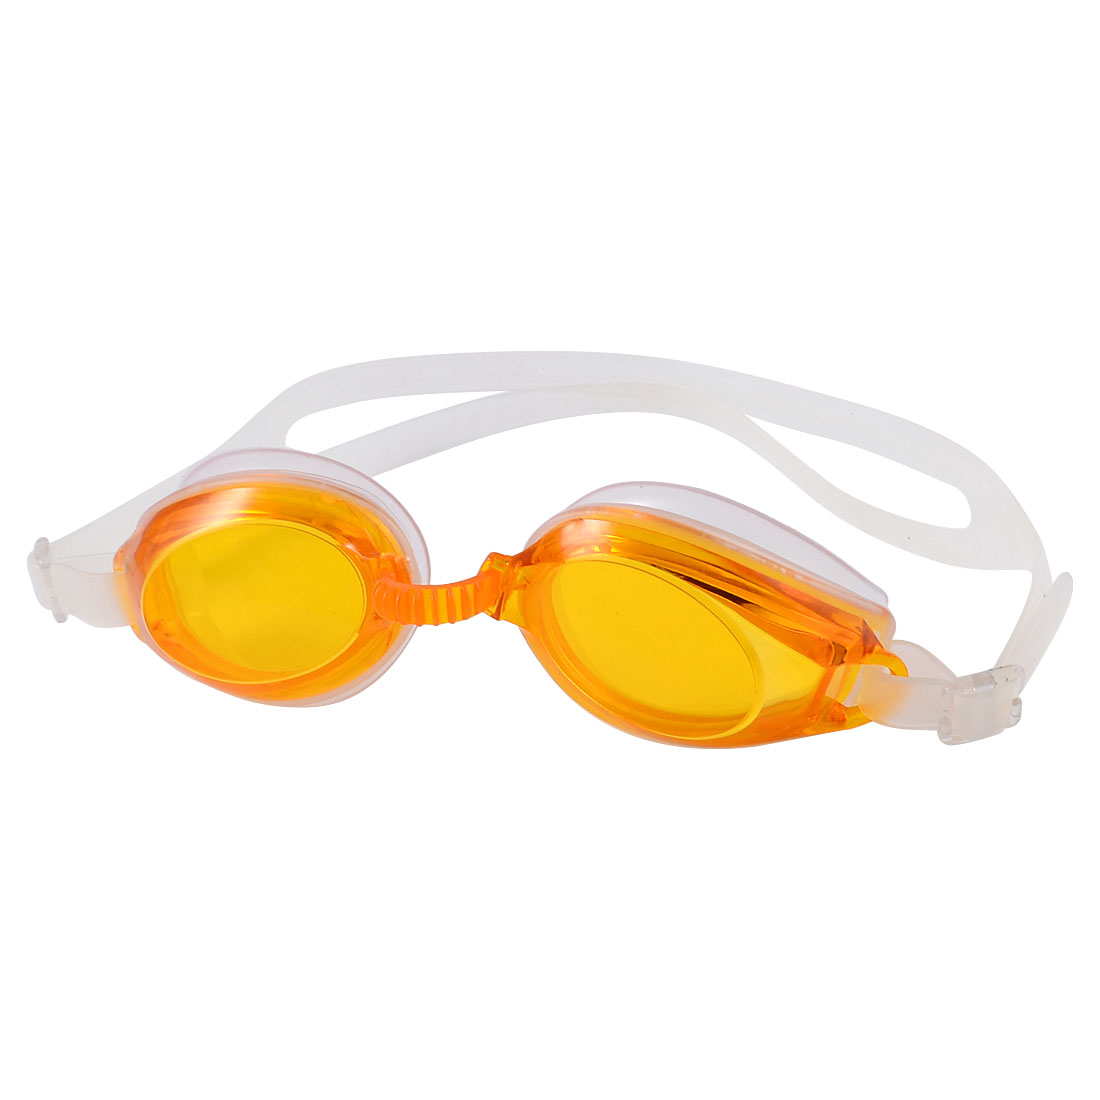 Portable Orange Oval Shape Lens Off White Adjustable Swimming Goggles for Child